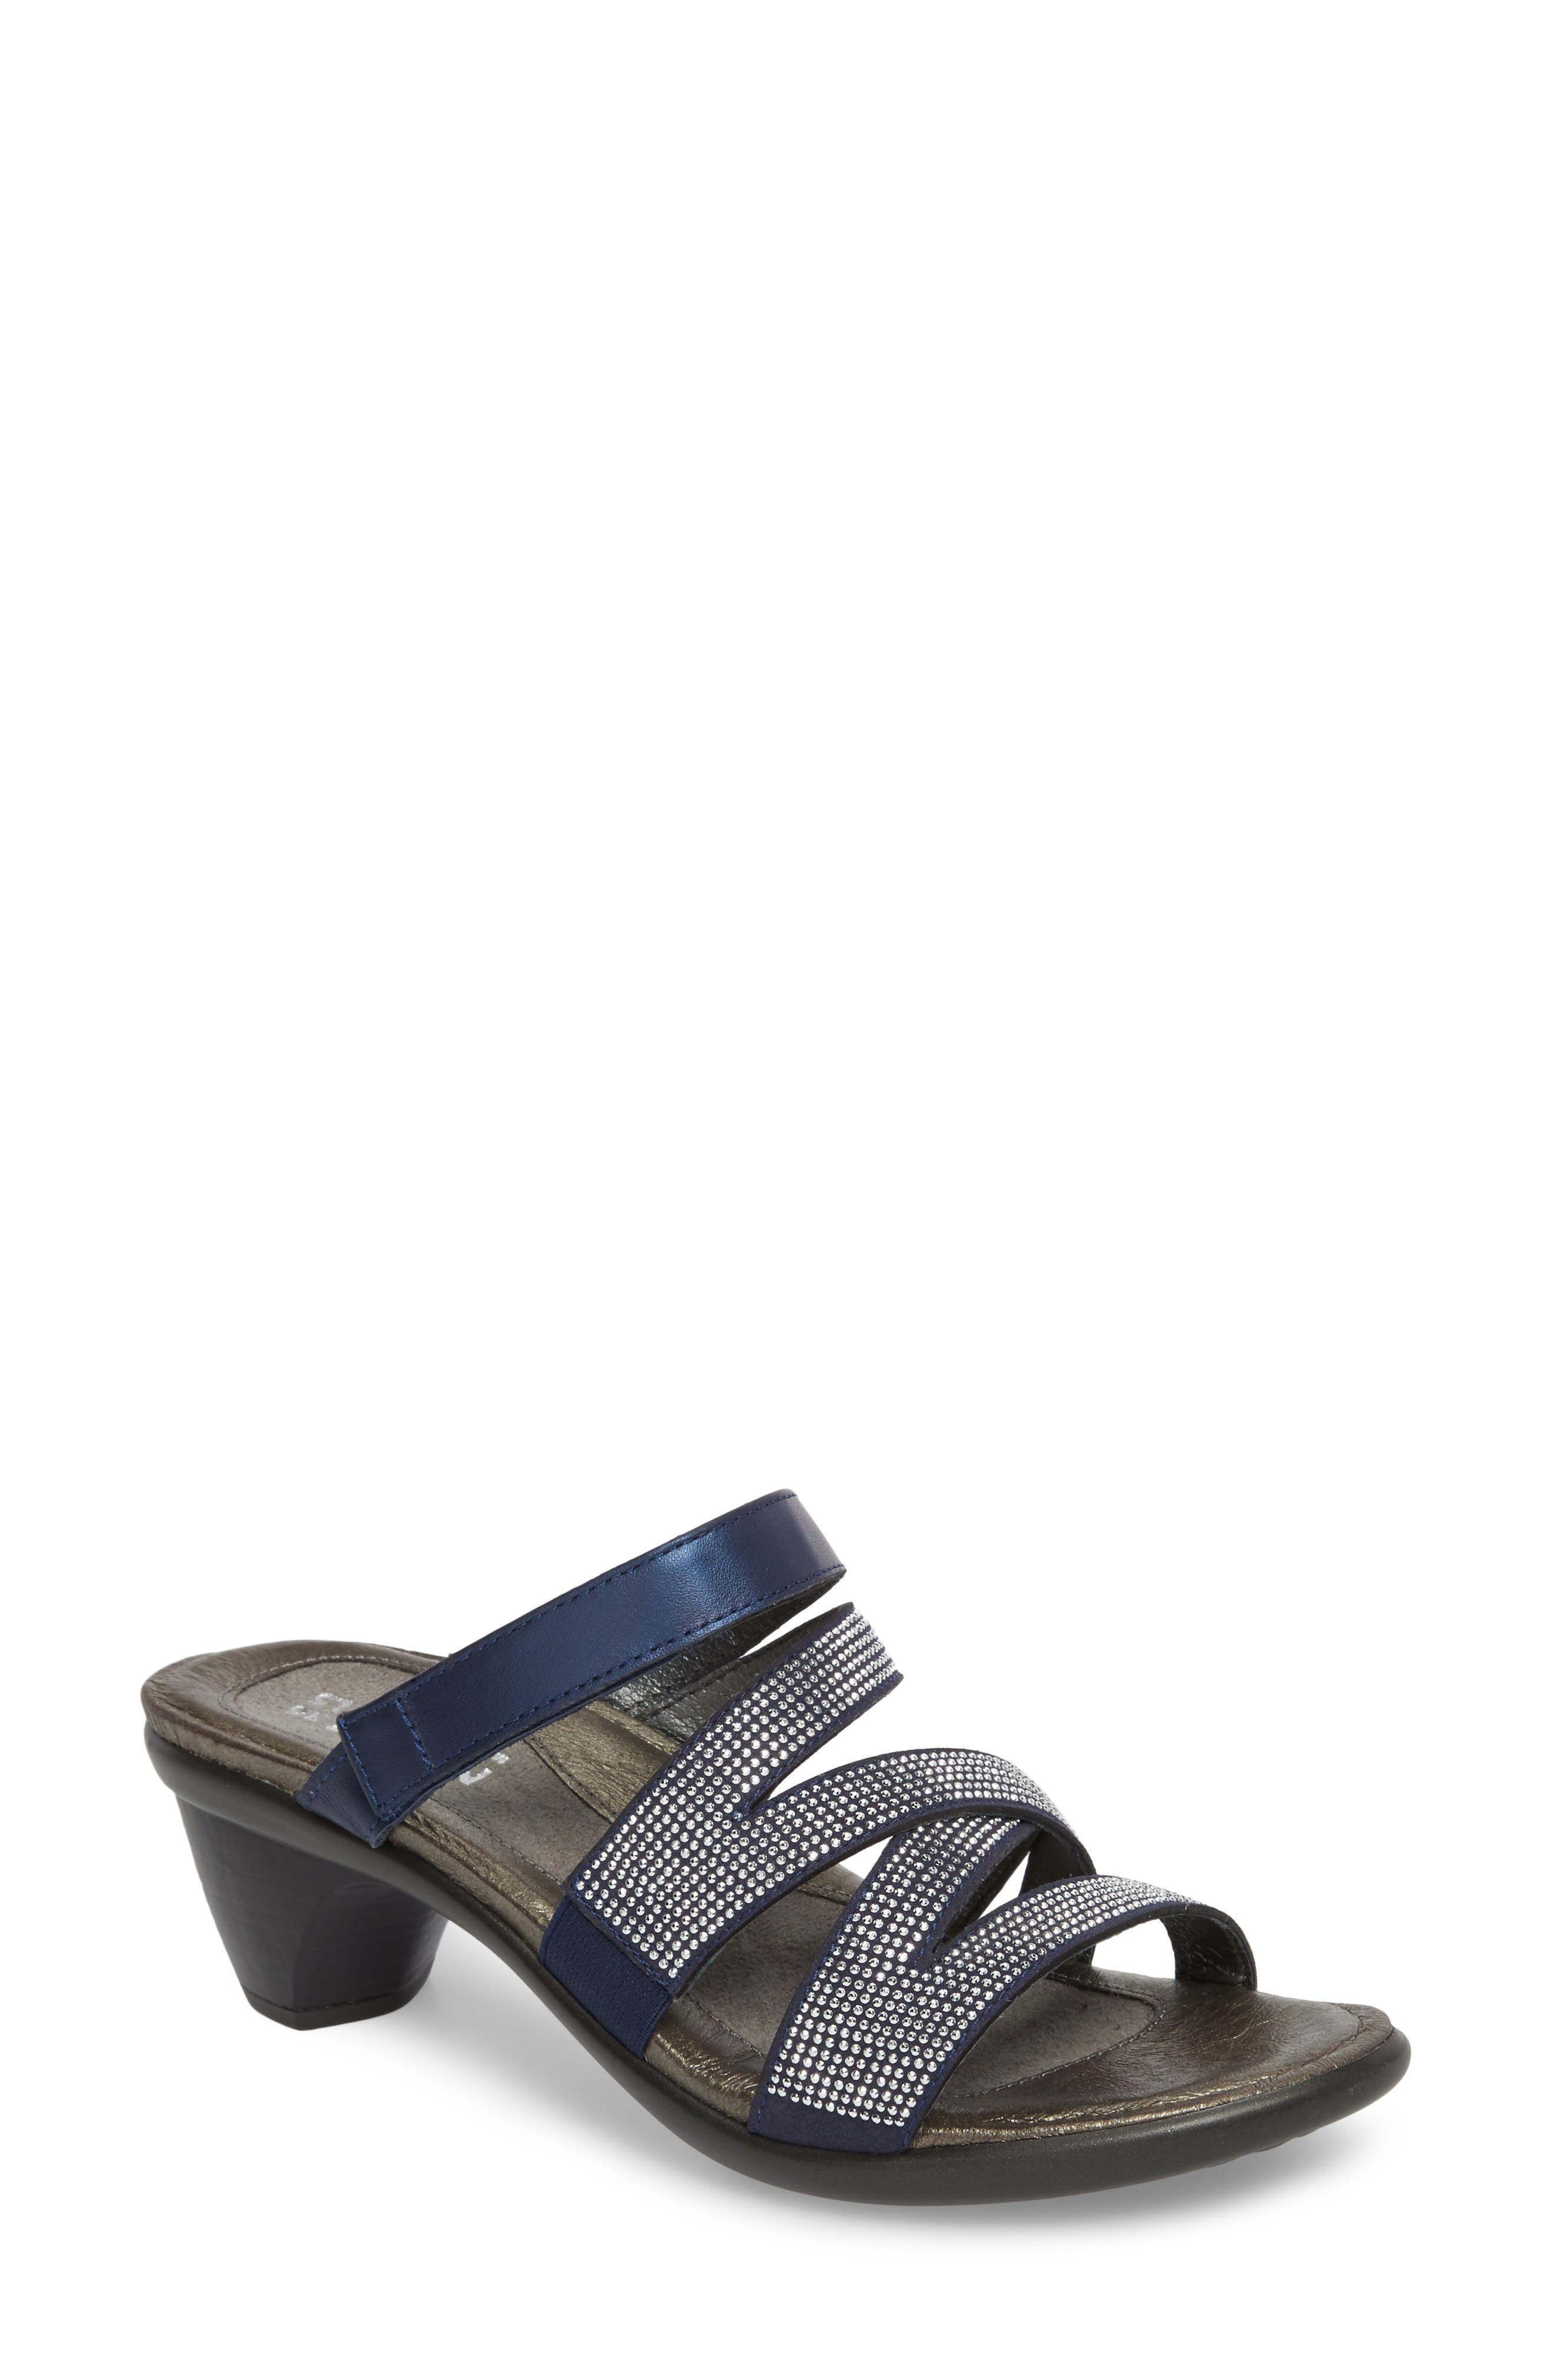 Formal Sandal,                             Main thumbnail 1, color,                             DARK BLUE LEATHER